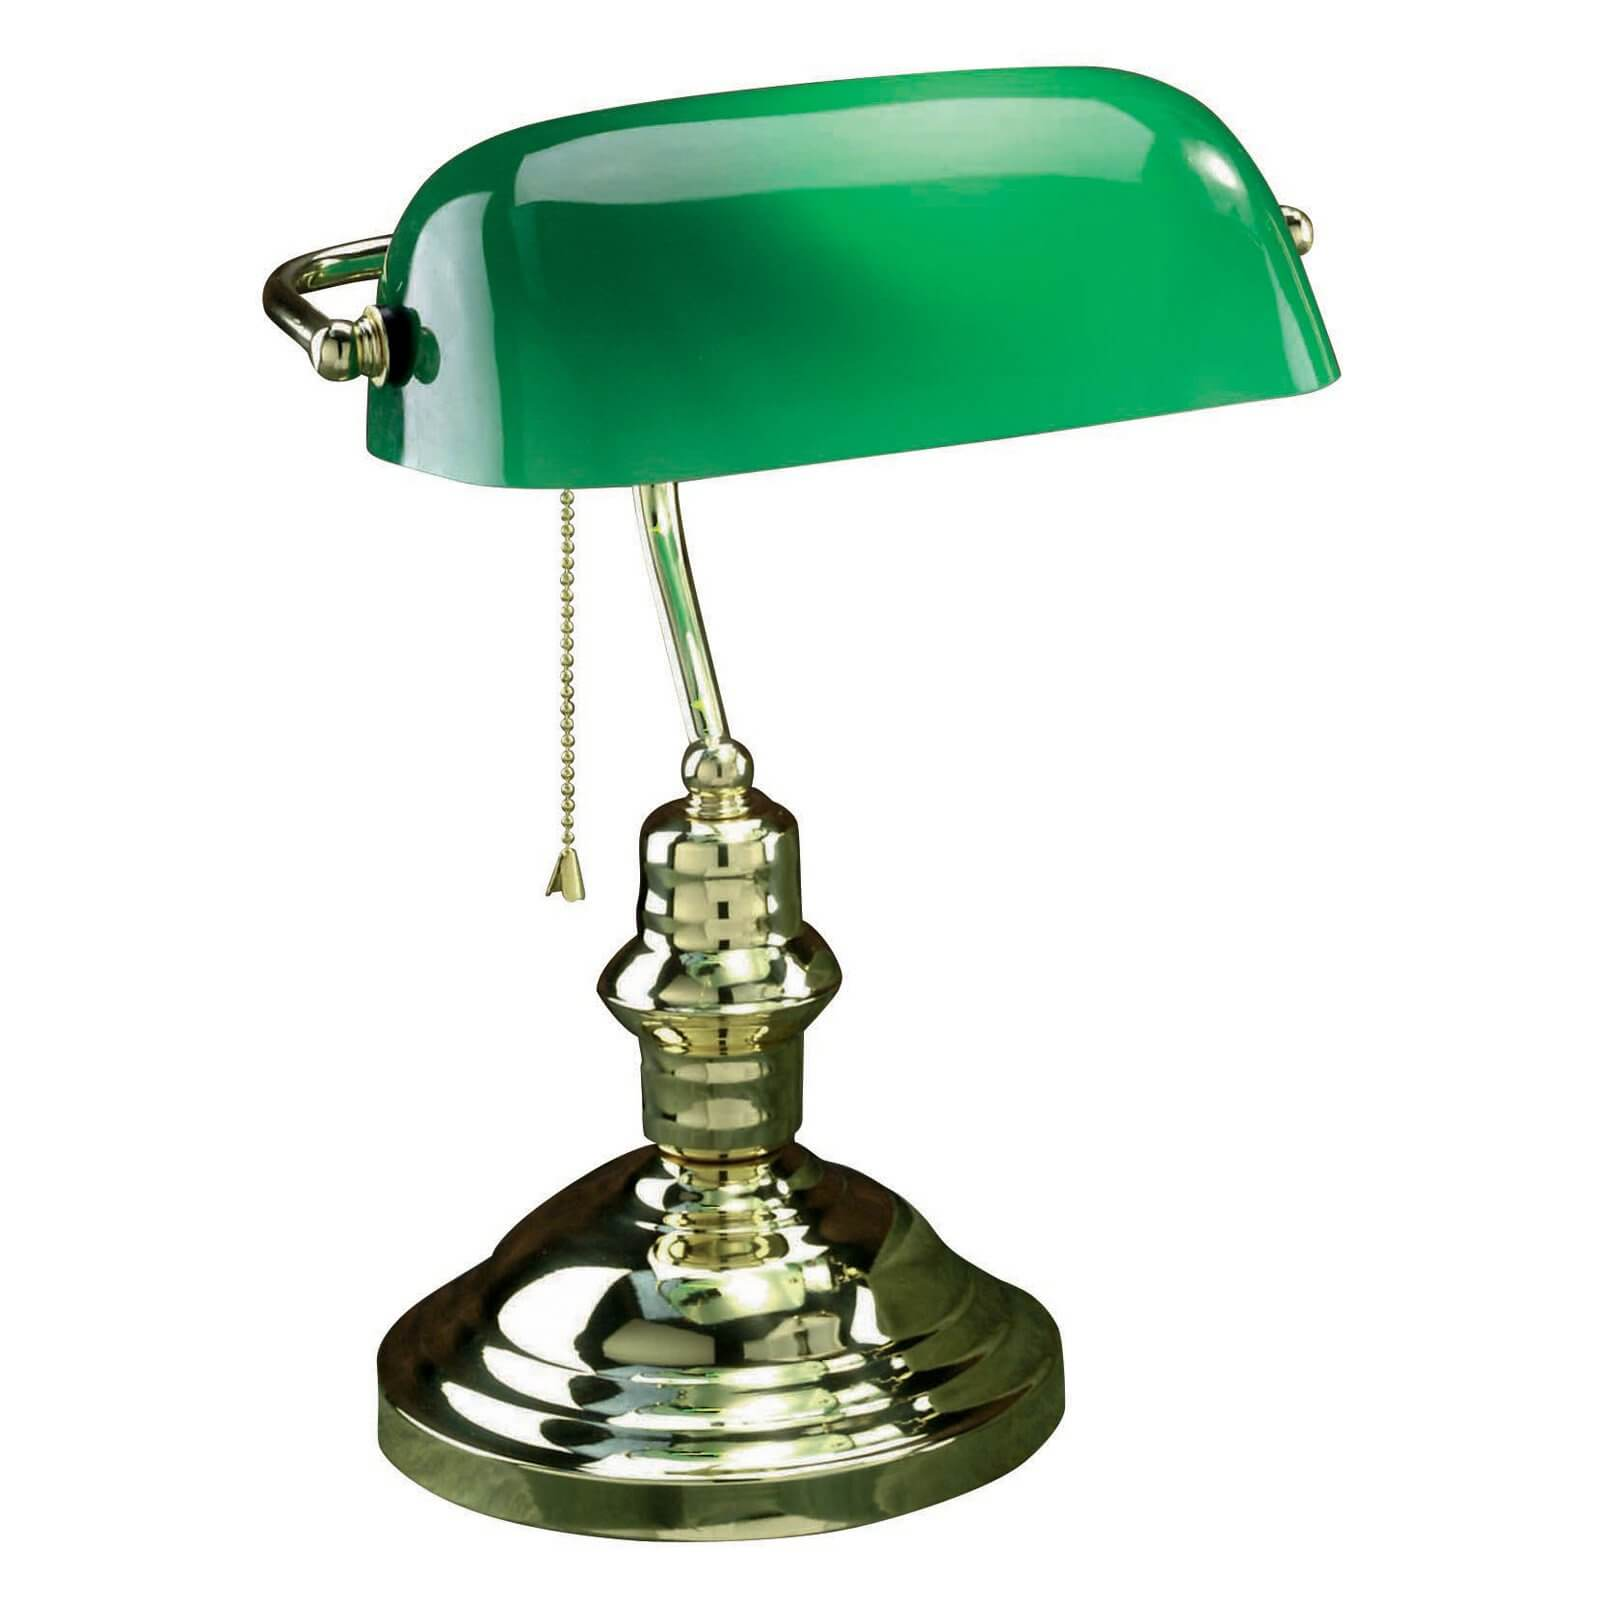 Our first model is the classic green glass shade design, which you may recognize from countless films and possibly your own parents or grandparents' homes.